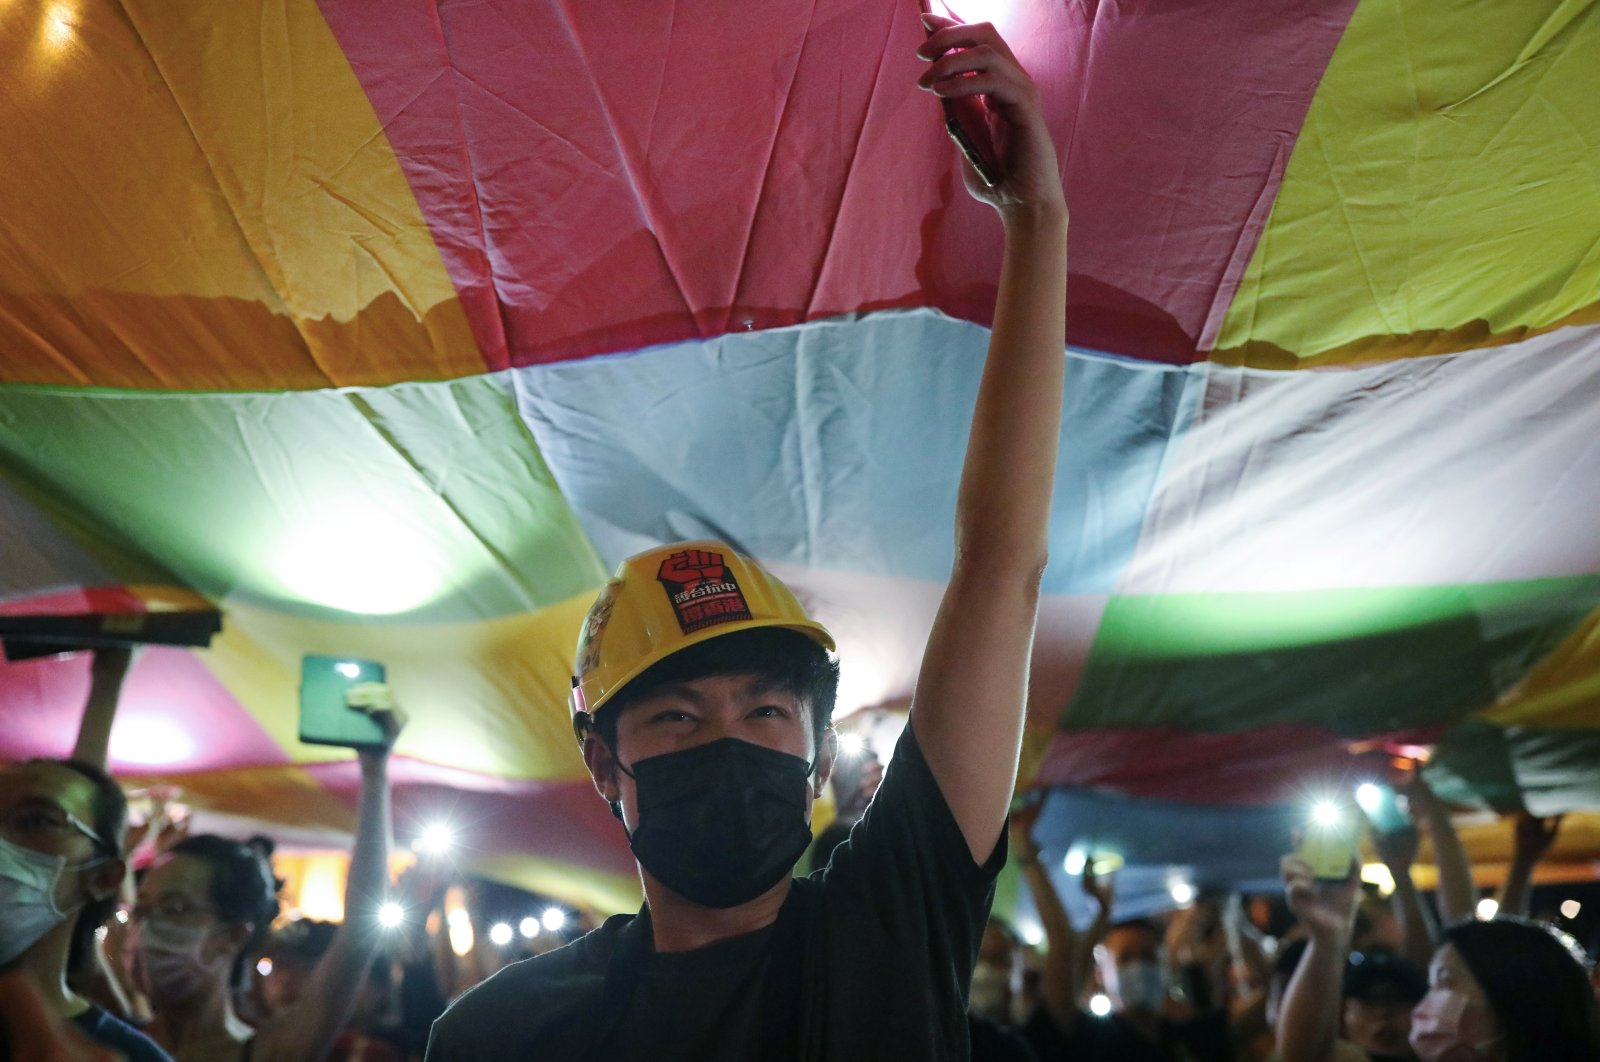 Supporters of the Hong Kong anti-government movement gather at Liberty Square in Taipei, Taiwan, June 13, 2020. (Reuters Photo)